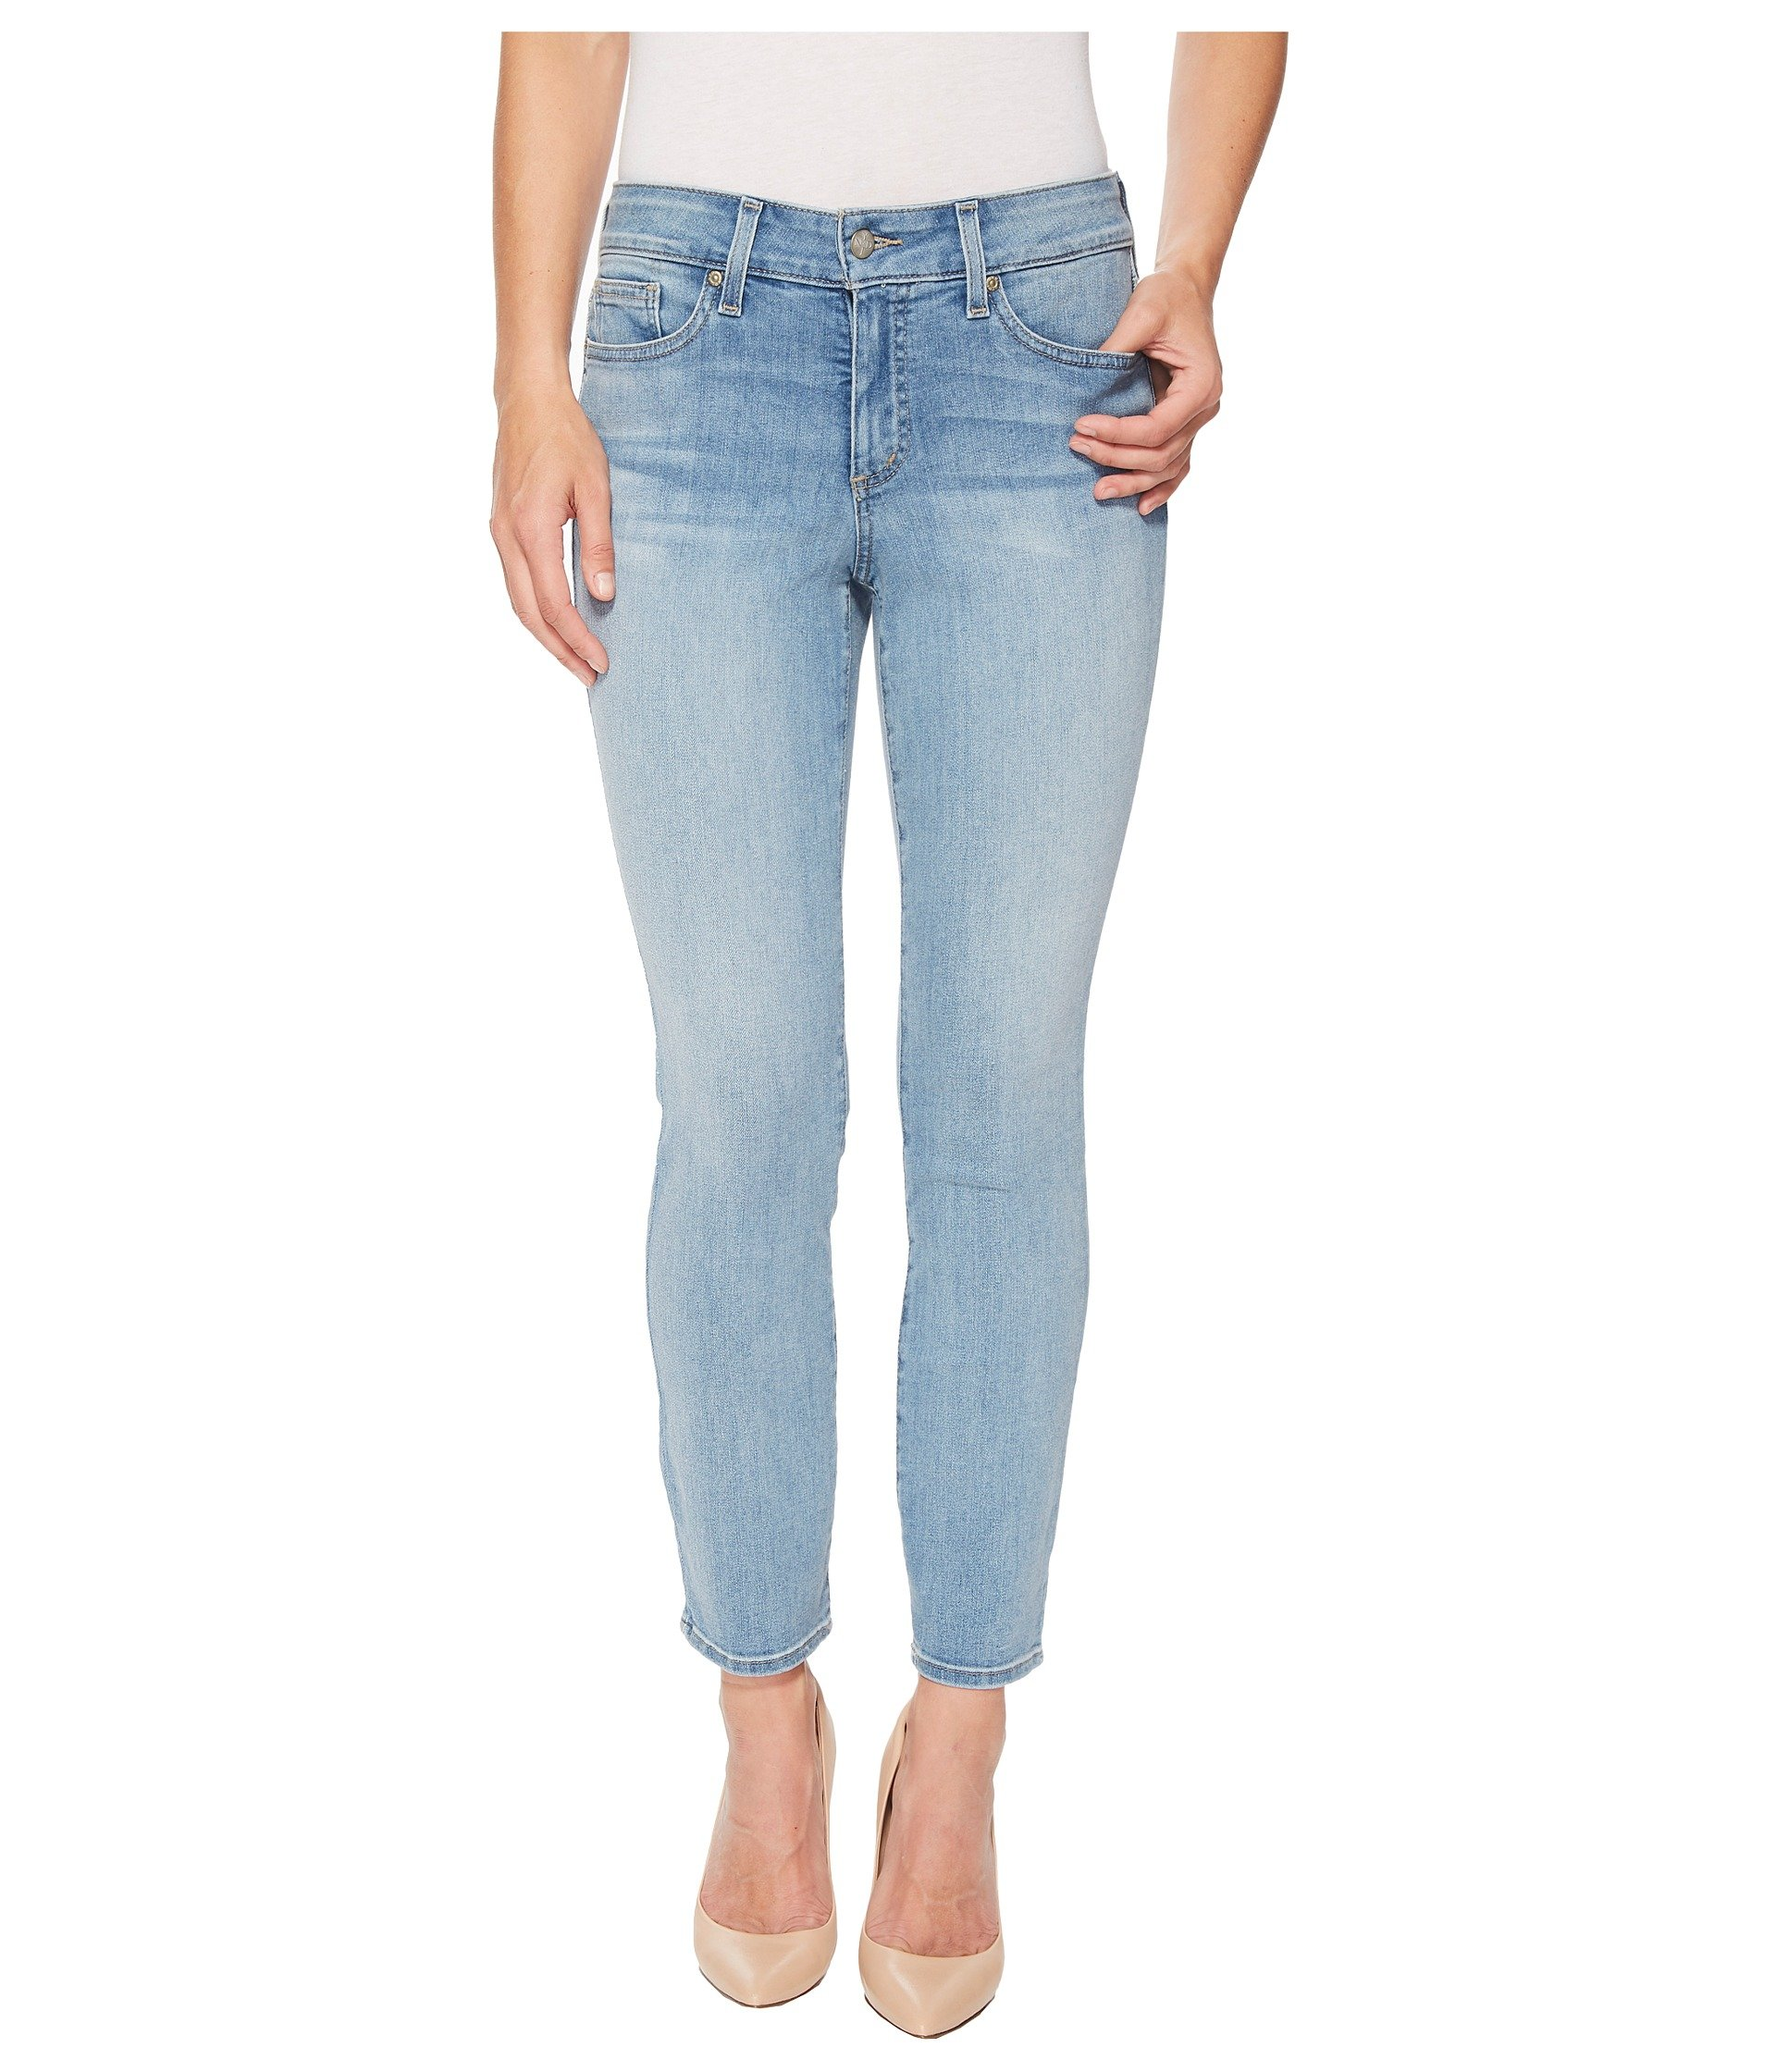 NYDJ Women's Petite Size Alina Ankle Jeans, Dreamstate, 6P